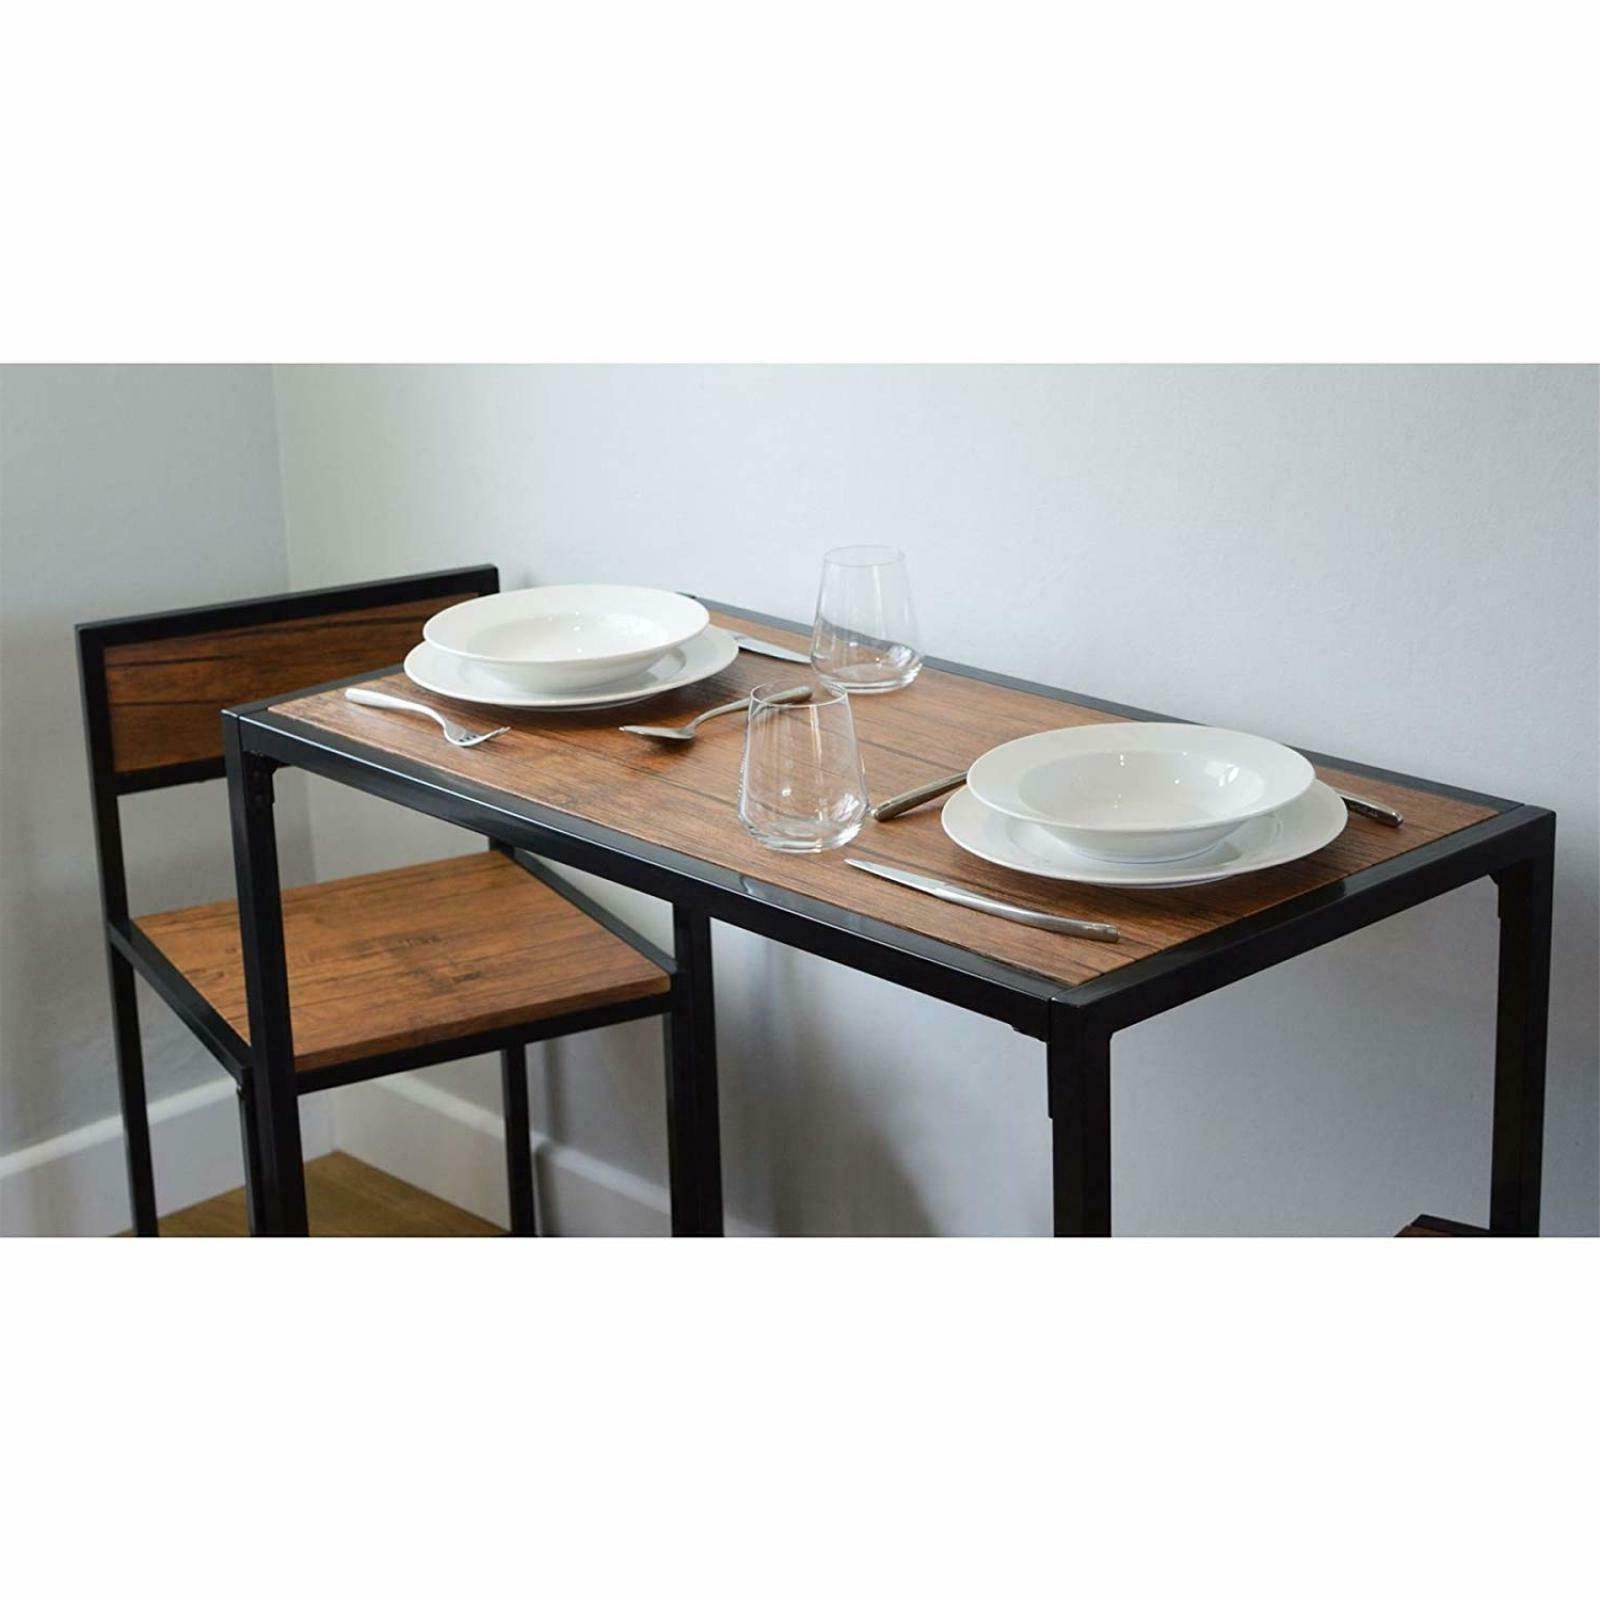 2 Table And Chairs Breakfast Room Furniture